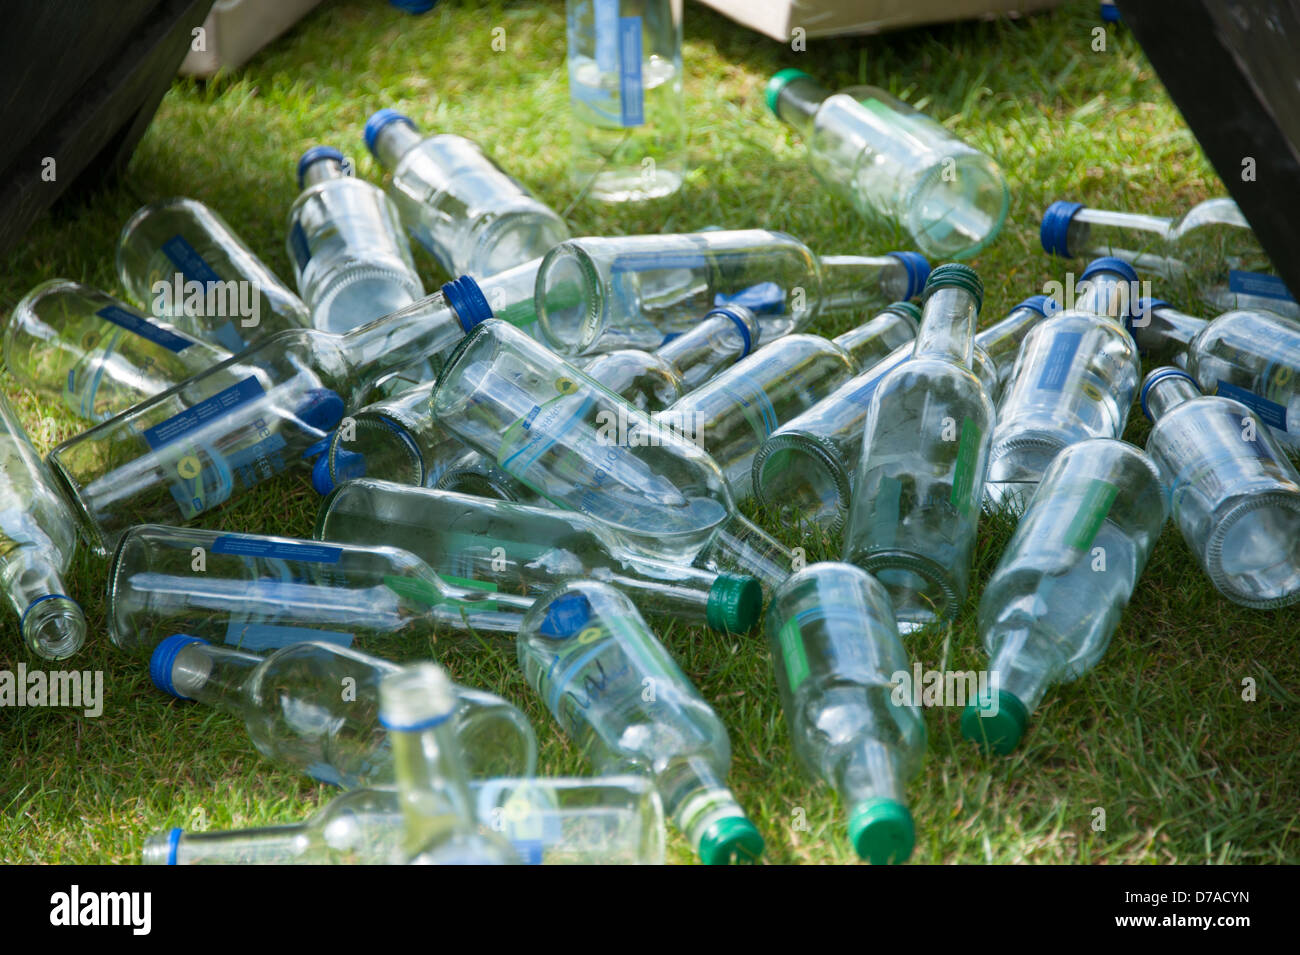 Empty Water bottles Mineral on grass pile dropped - Stock Image